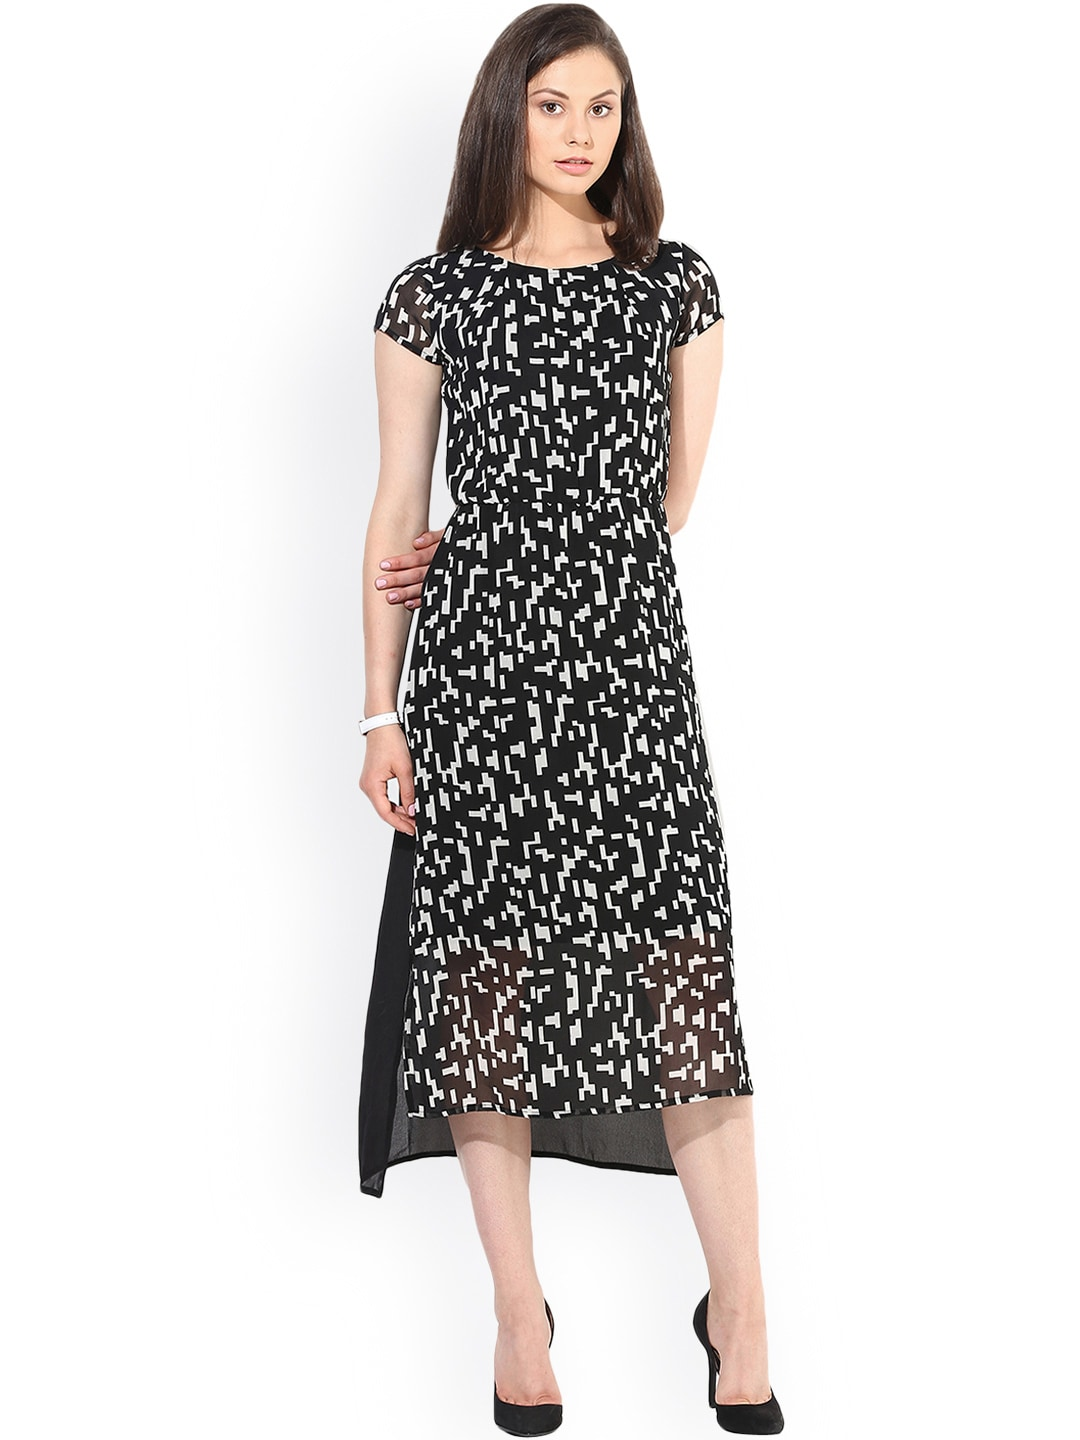 Unique Home Clothing Women Clothing Dresses FabAlley Dresses